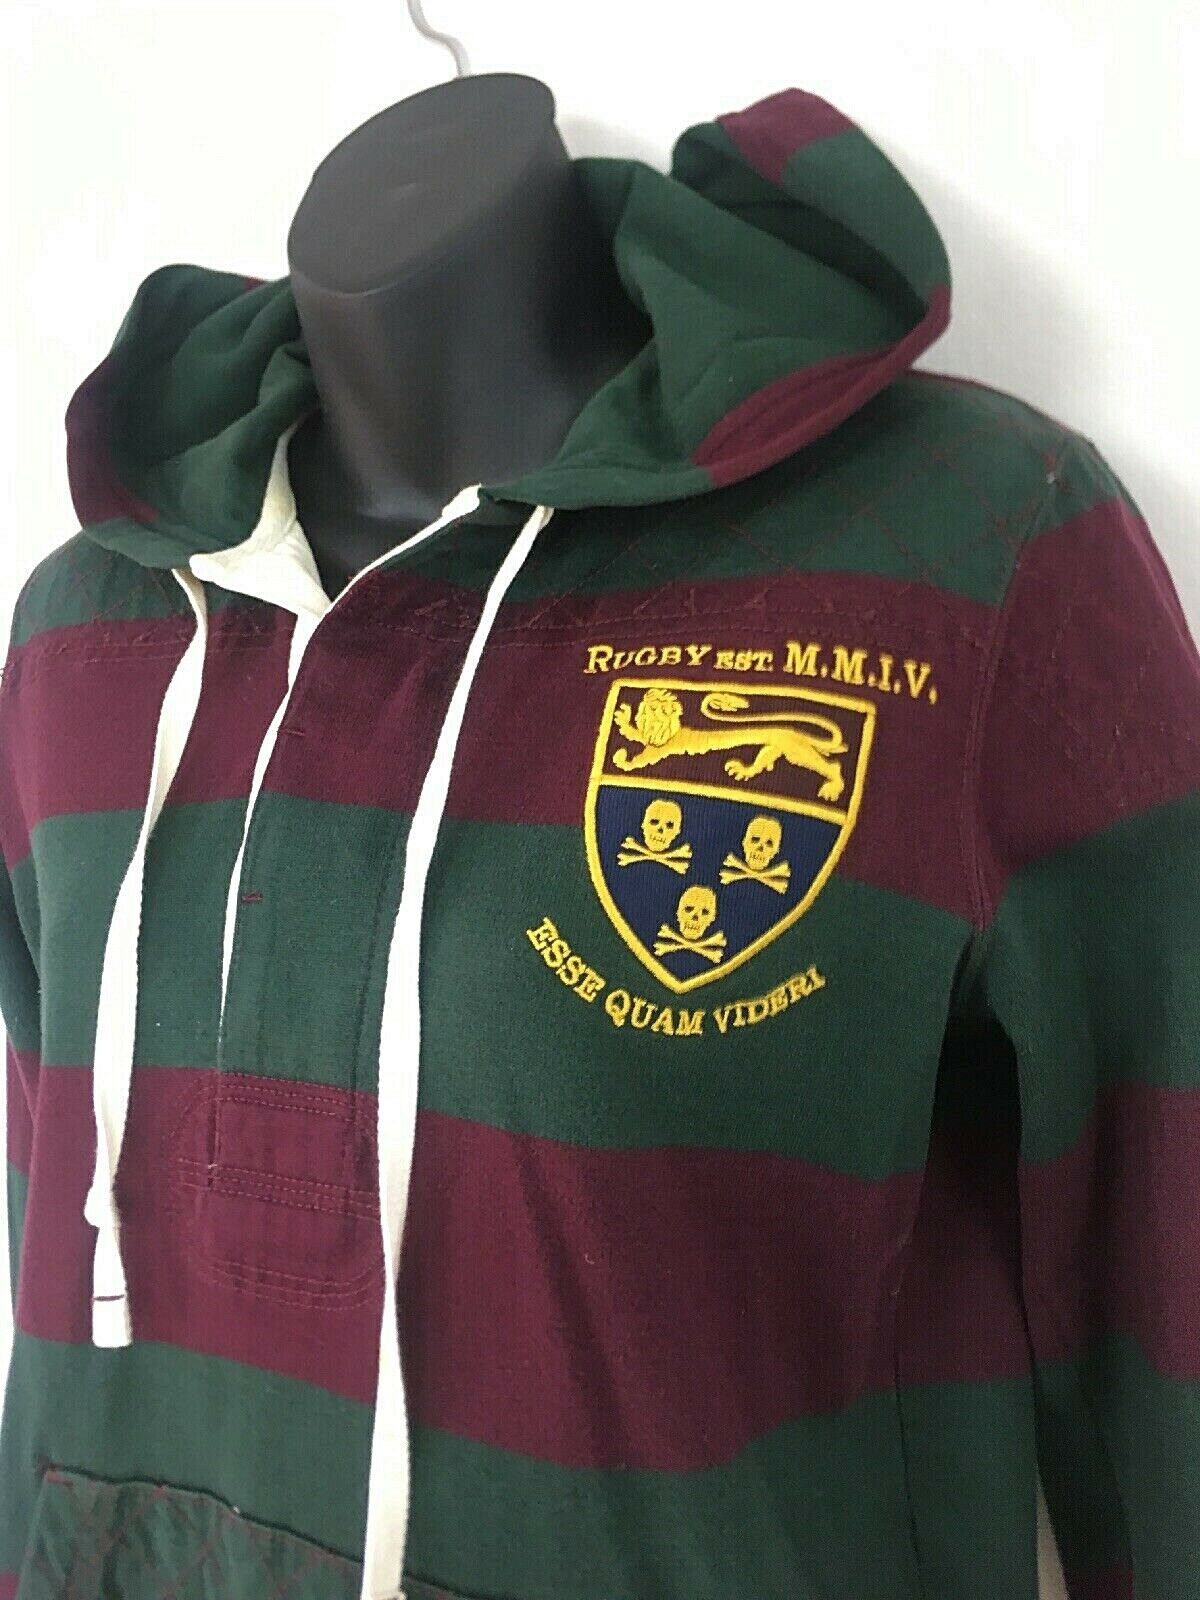 Rugby Ralph Lauren damen Sweatshirt Hood Striped Crest Pocket Distressed M